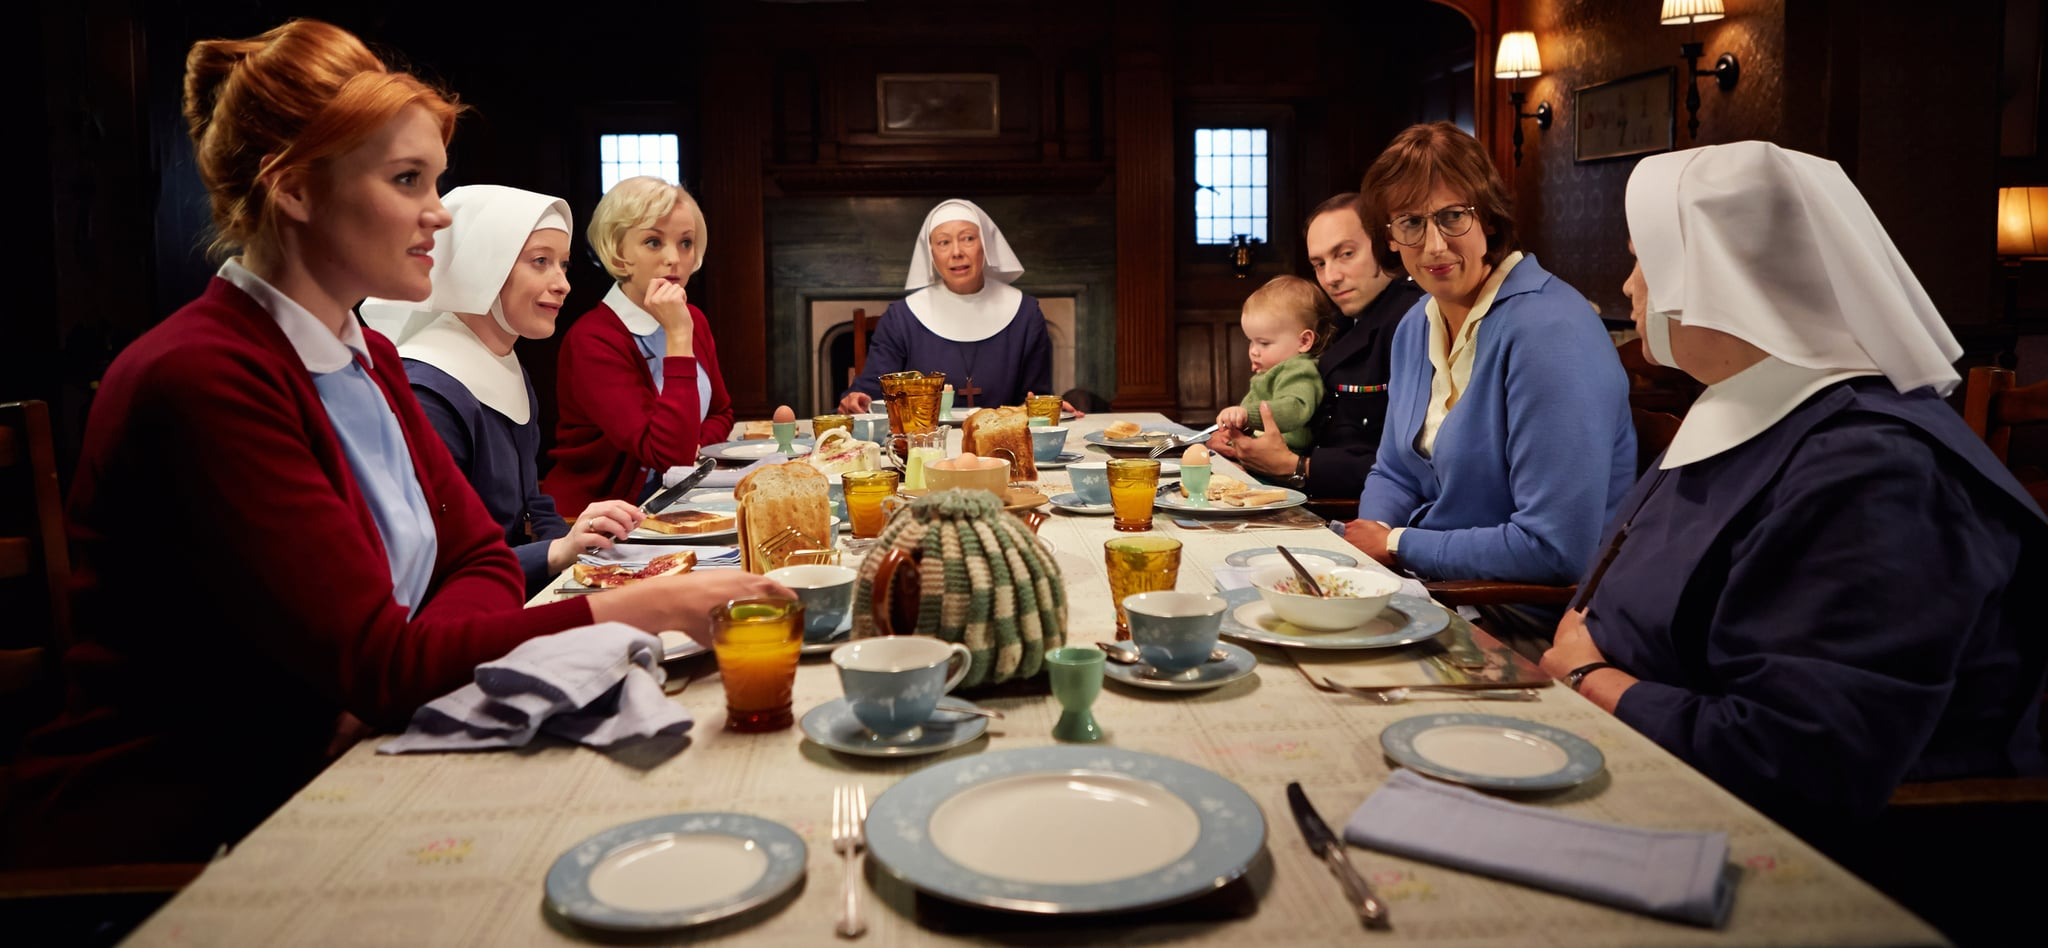 CALL THE MIDWIFE, (from left): Emerald Fennell, Victoria Yeates, Helen George, Jenny Agutter, Ben Caplan, Miranda Hart, Pam Ferris (back to camera), (Season 4, ep. 401, aired Jan. 18, 2015 in UK/aired March 29, 2015 in US). photo: Robert Viglasky / Neal Street Prod./PBS /courtesy Everett Collection